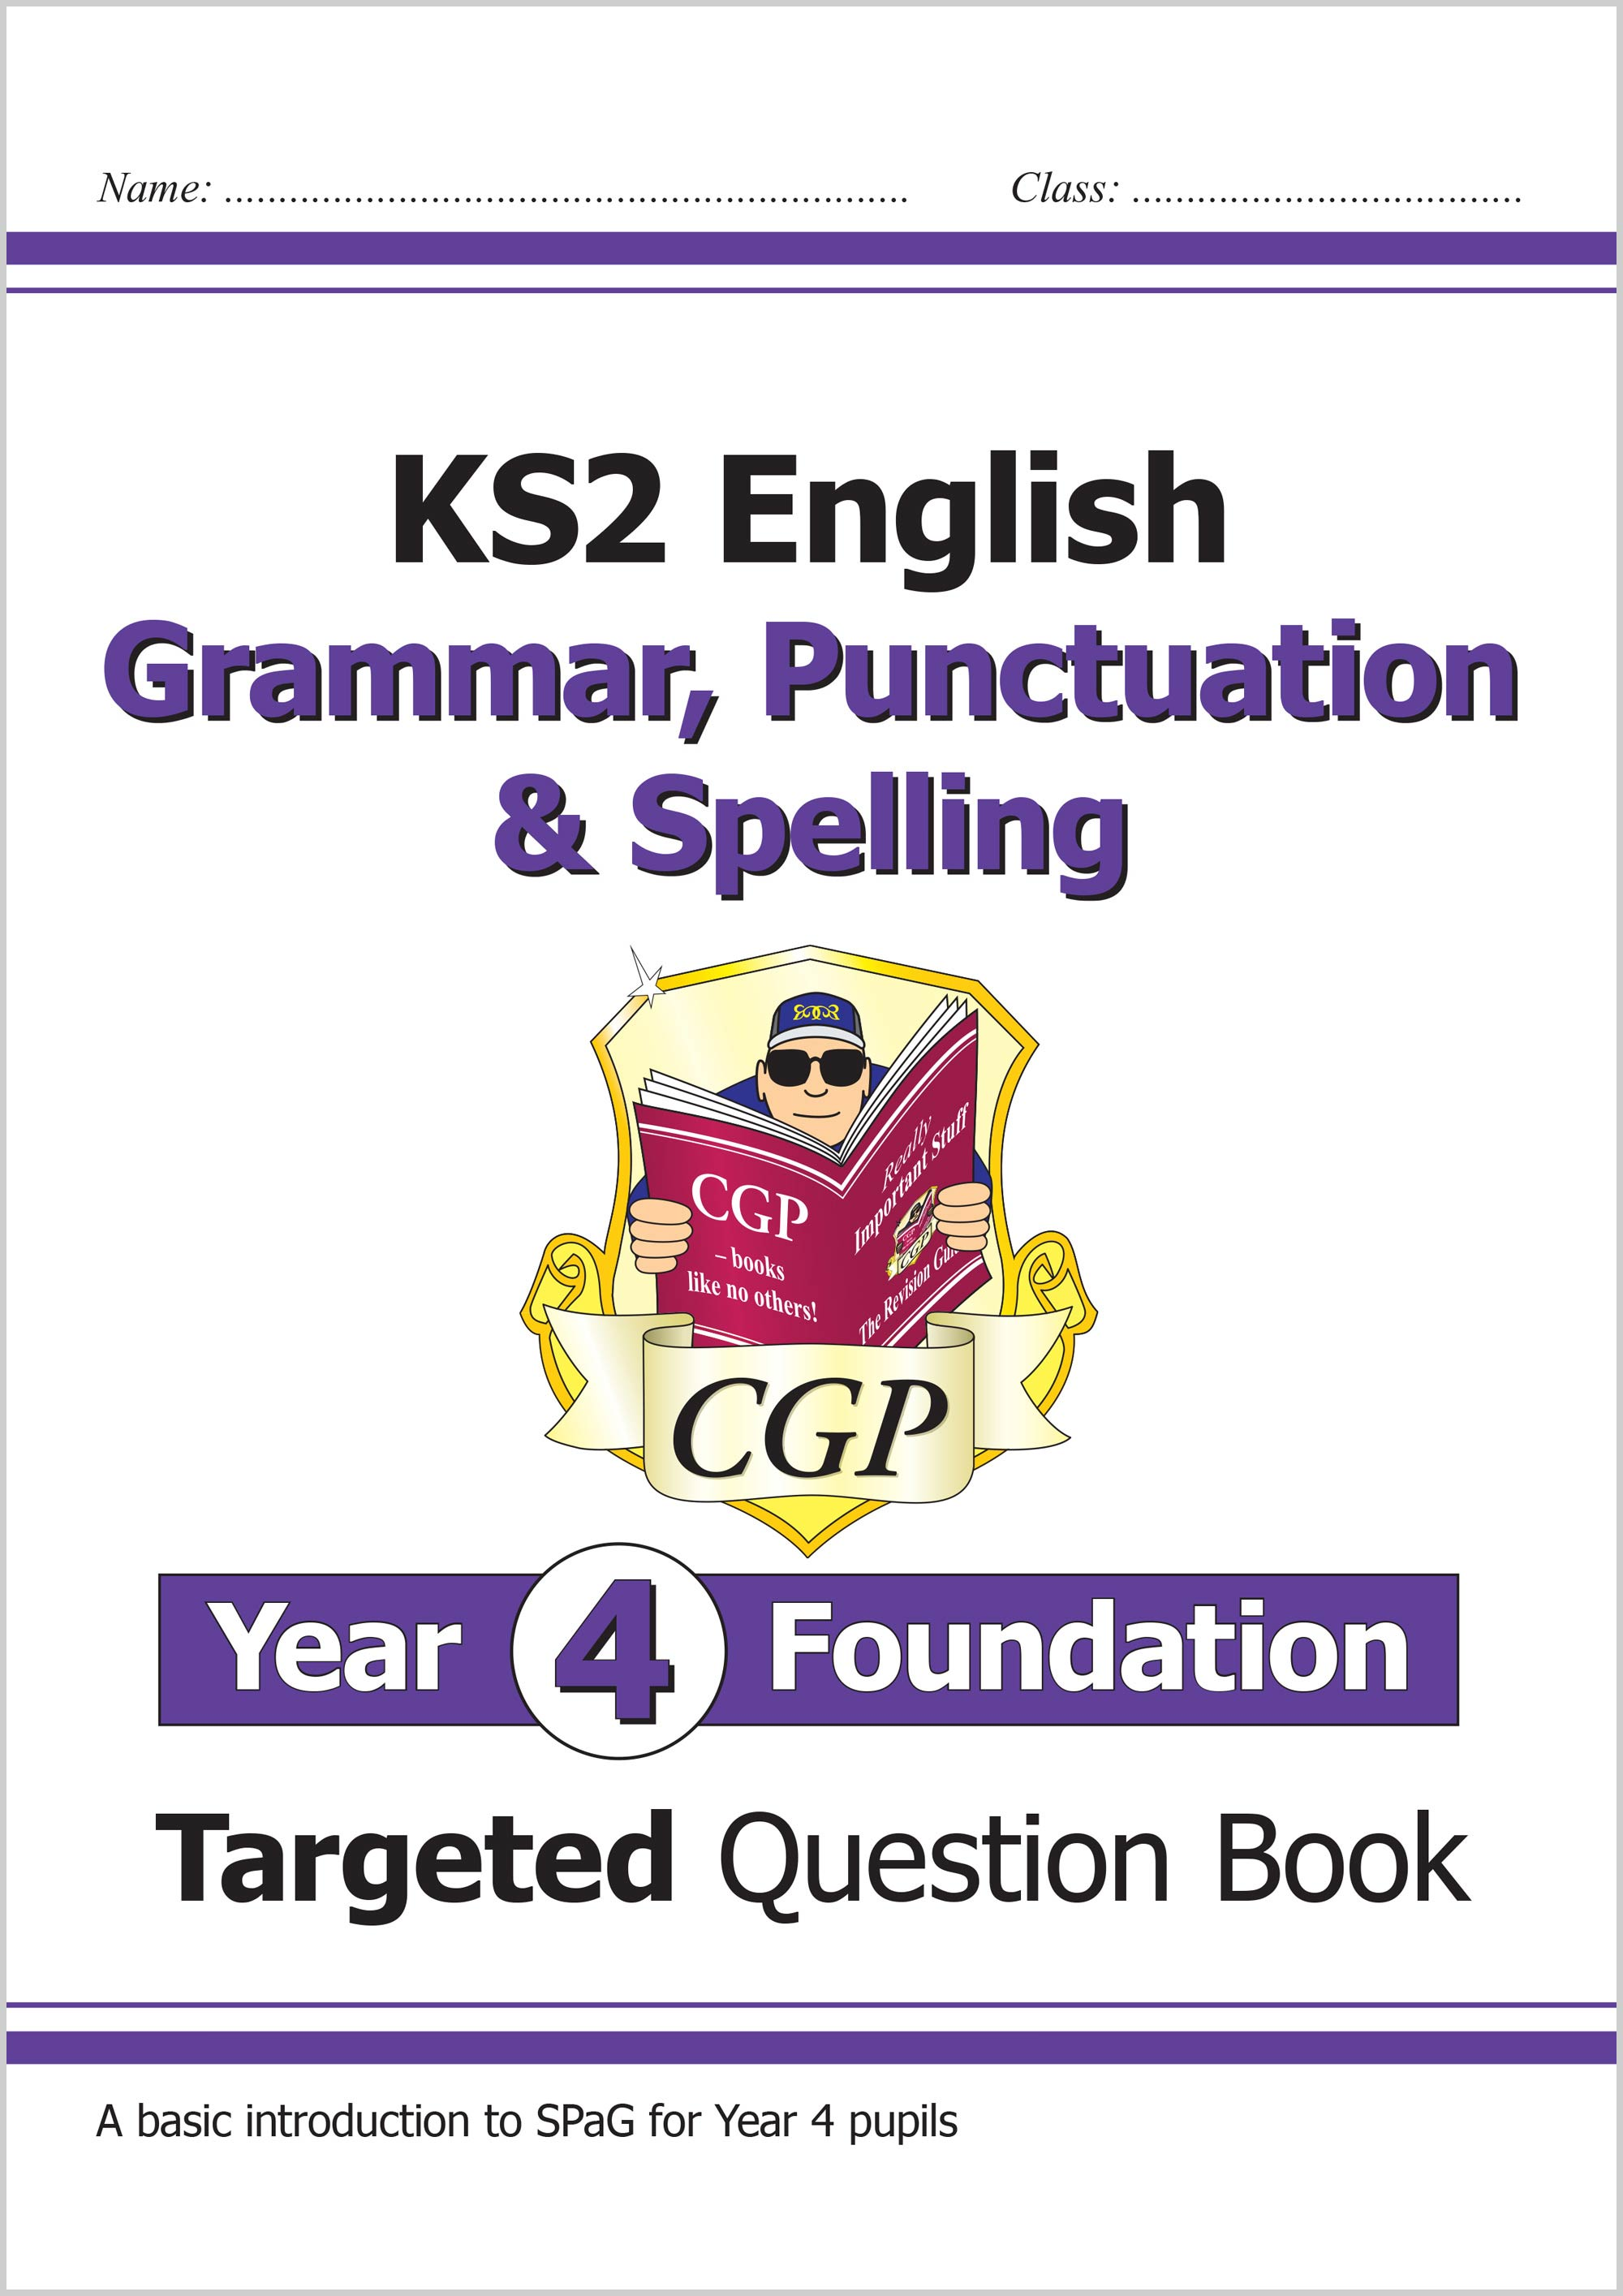 EG4FW21 - New KS2 English Targeted Question Book: Grammar, Punctuation & Spelling - Year 4 Foundatio